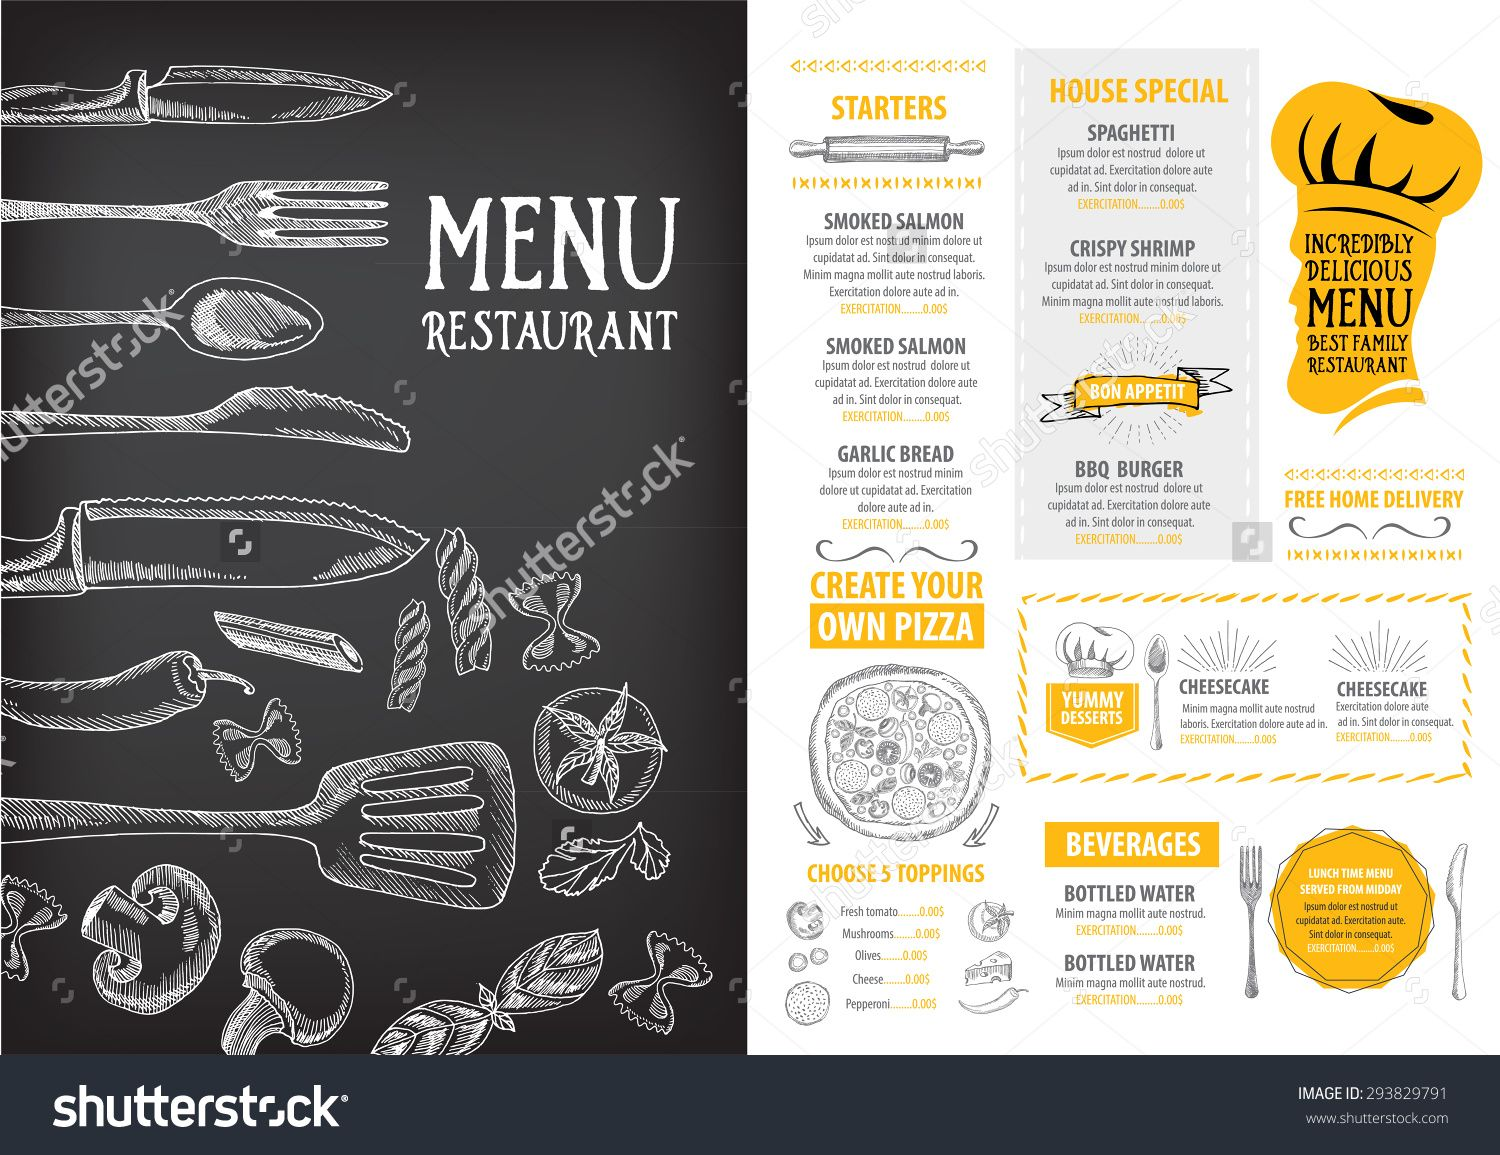 Image Result For Best Menu Designs  Lunch Menu Template Free